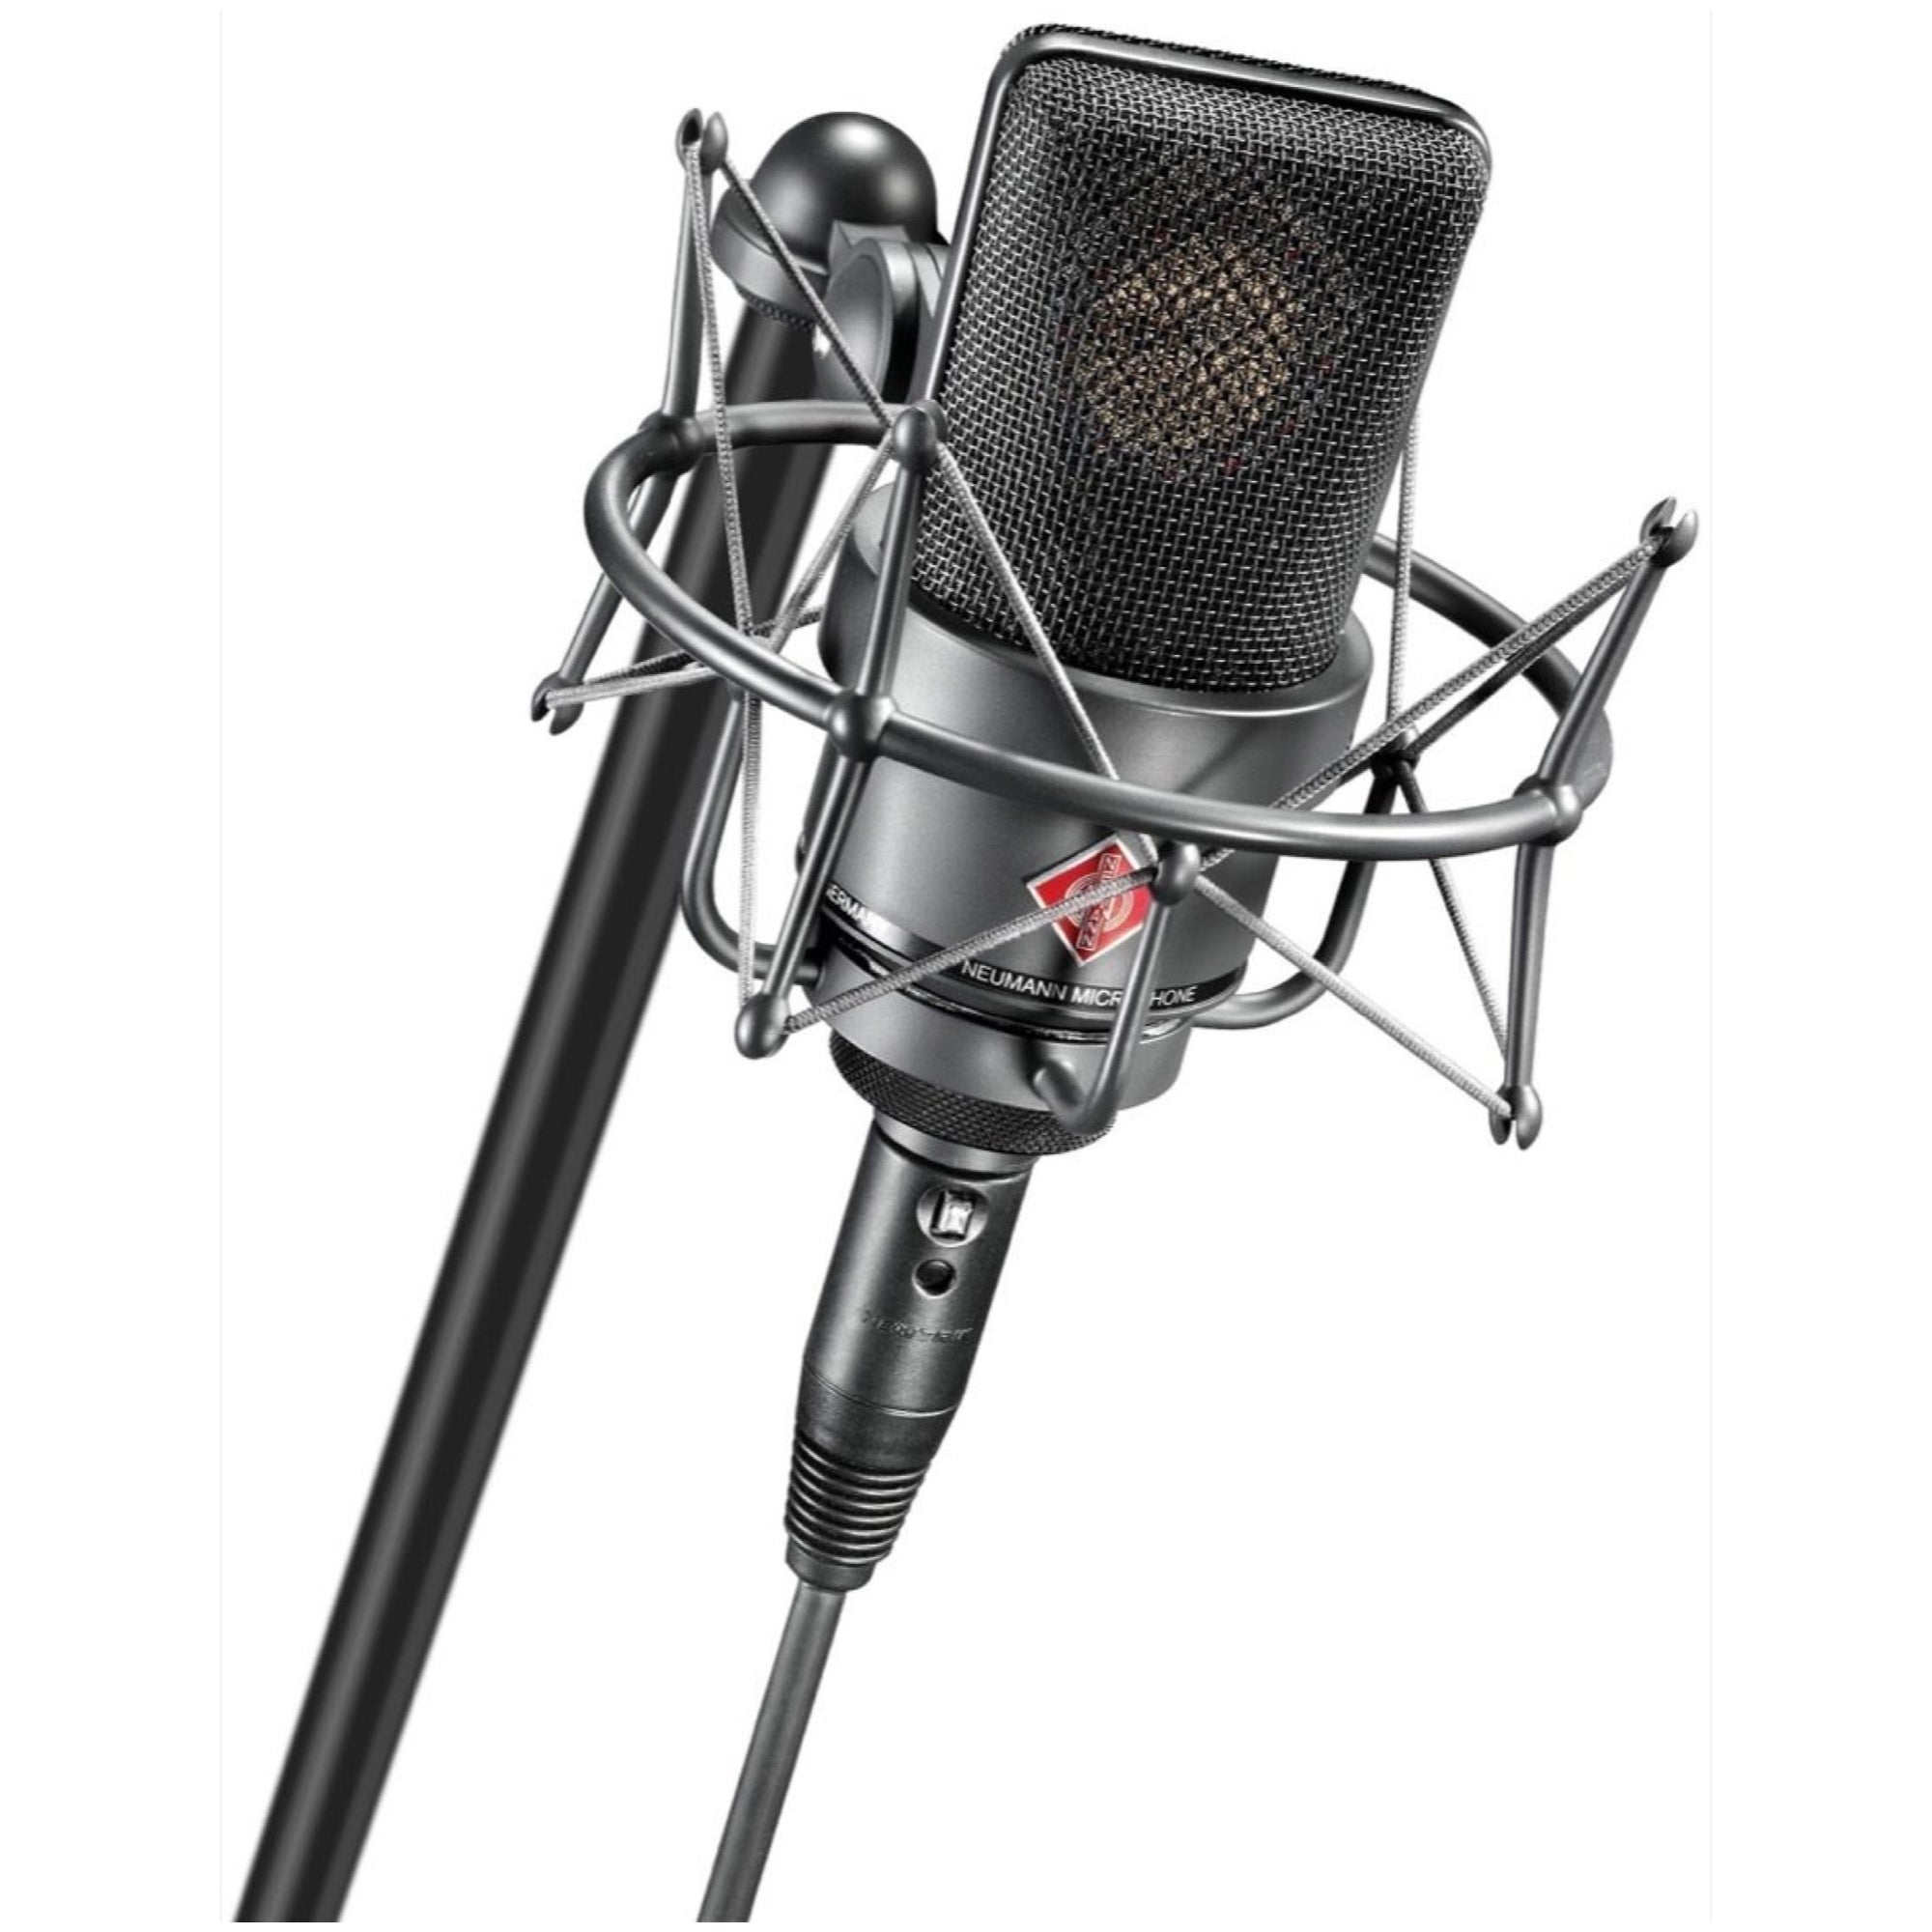 Neumann TLM 103 Anniversary Large-Diaphragm Condenser Microphone with Shockmount and Case, Black